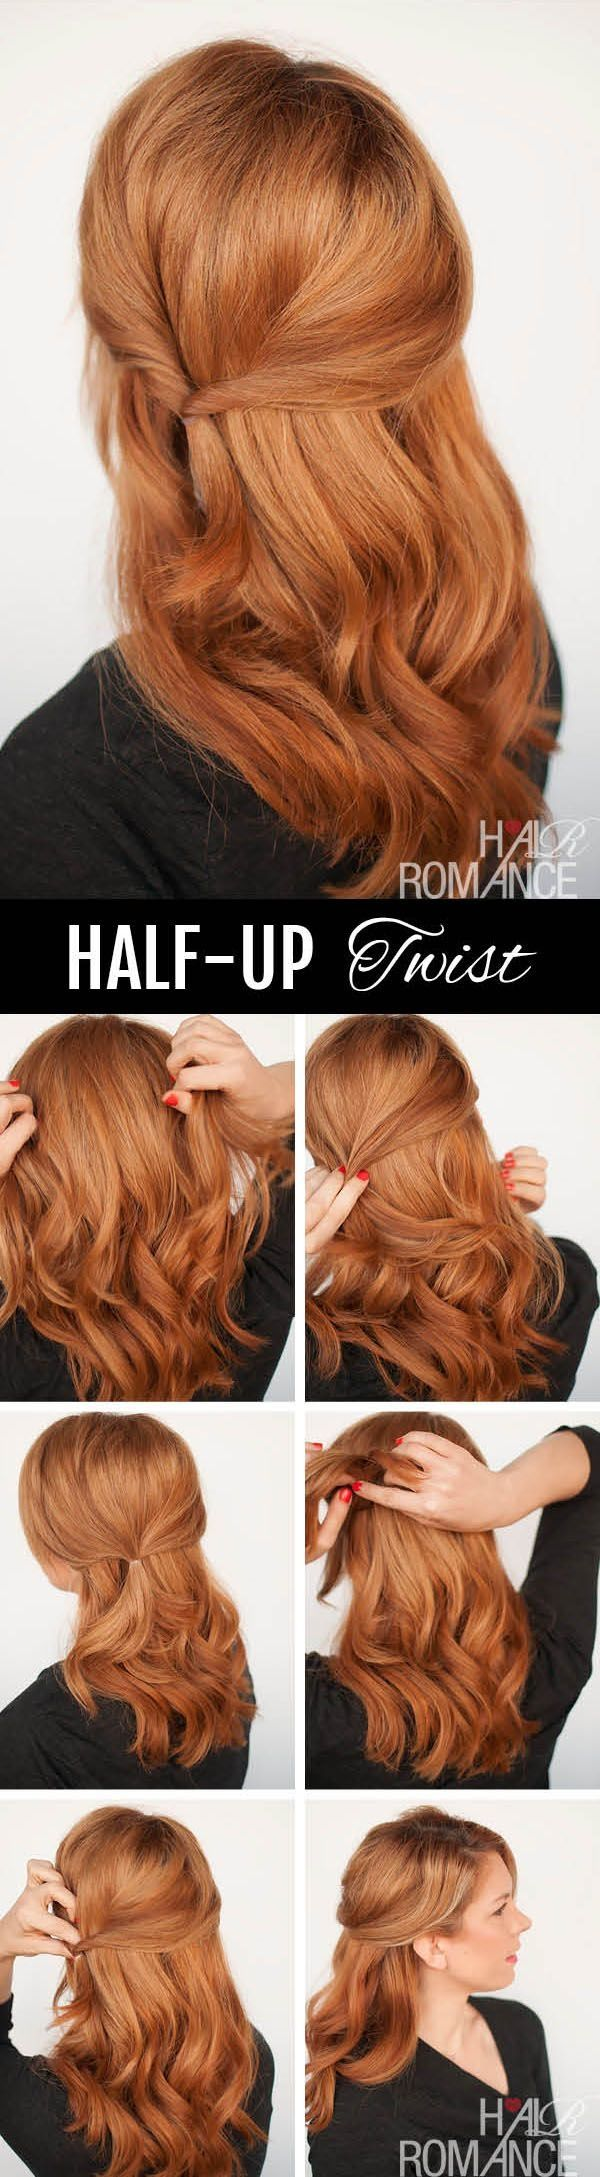 best hairstyles u beauty images on pinterest